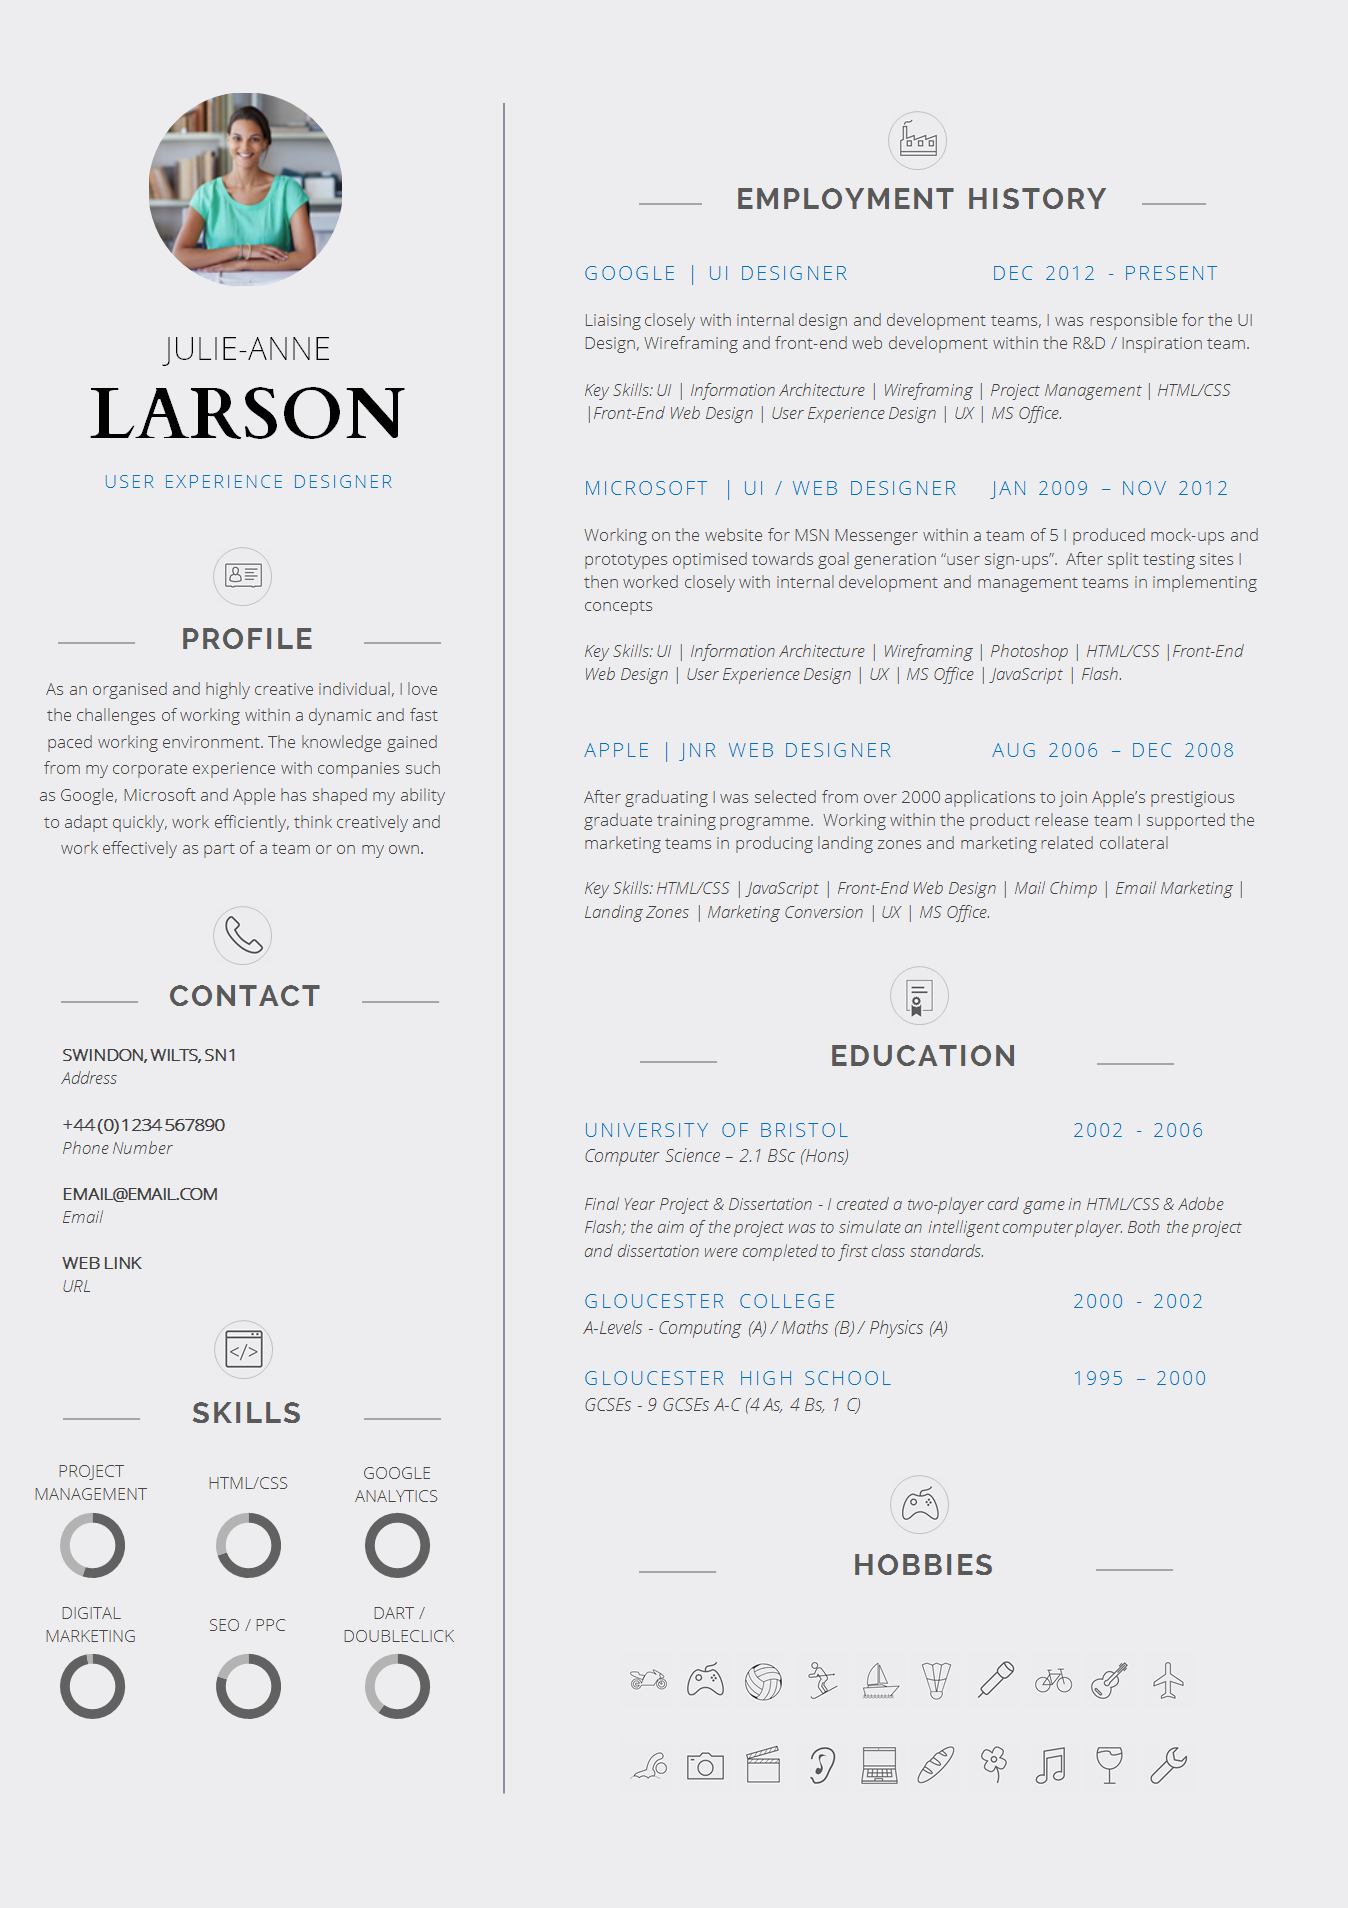 Professional CV Template. Download This CV Template